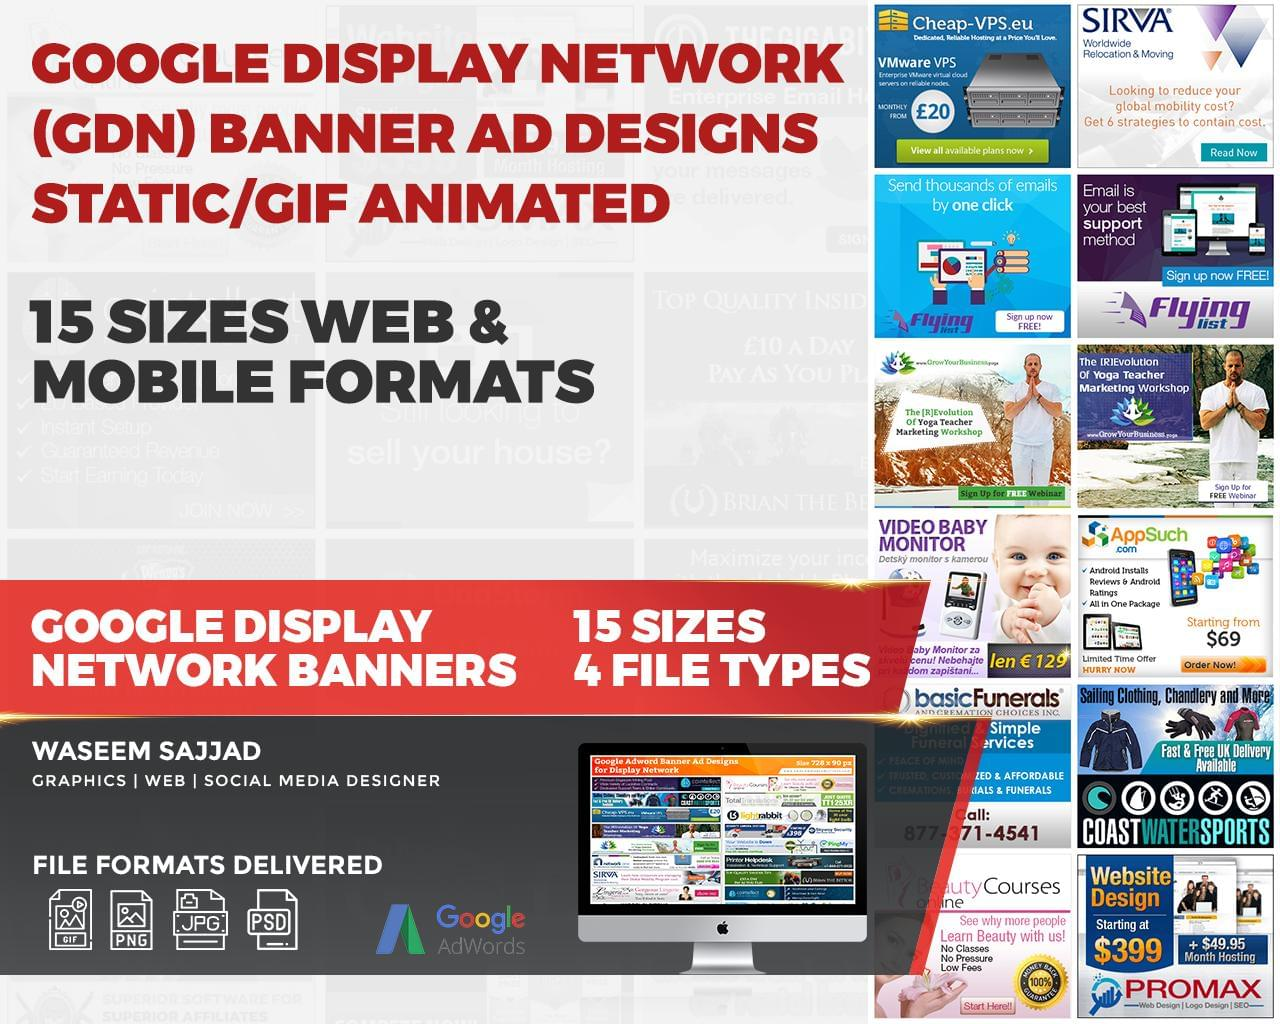 Google Display Network (GDN) Banner Ad designs Static/GIF Animated 15 Sizes Web & Mobile Formats by smproduction - 114833